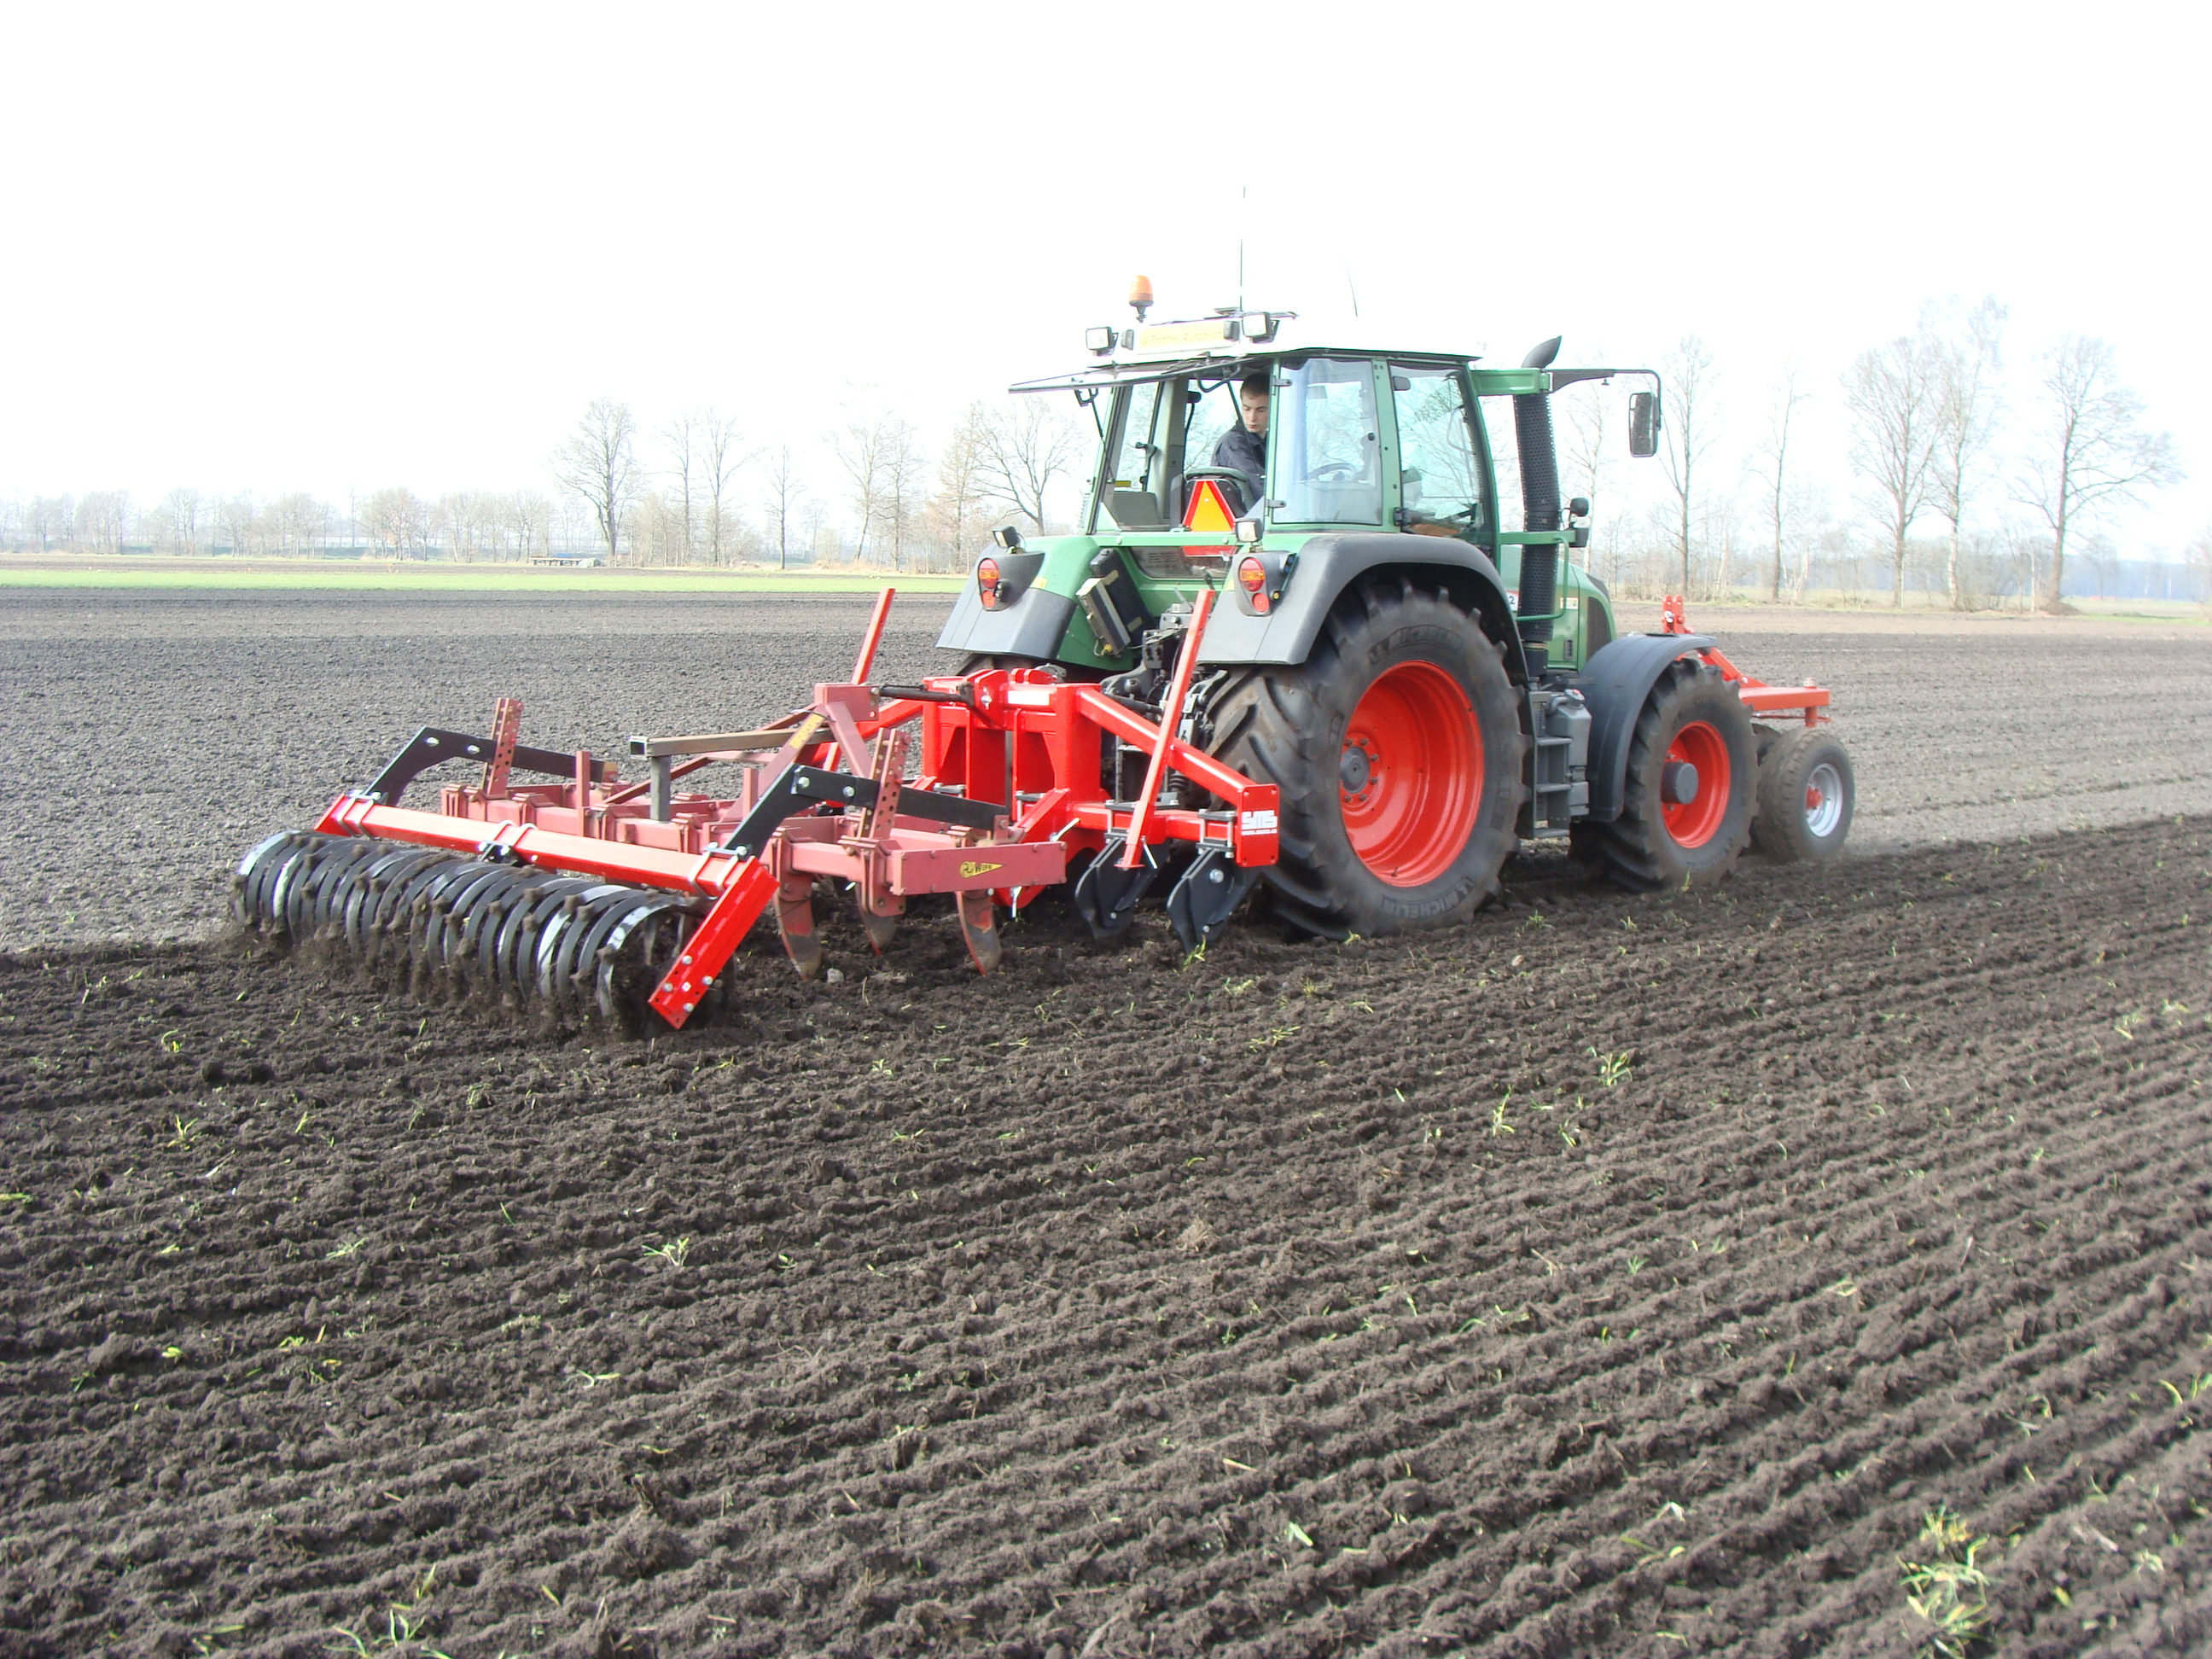 In the picture you see the machine that is used for non-inversion tillage